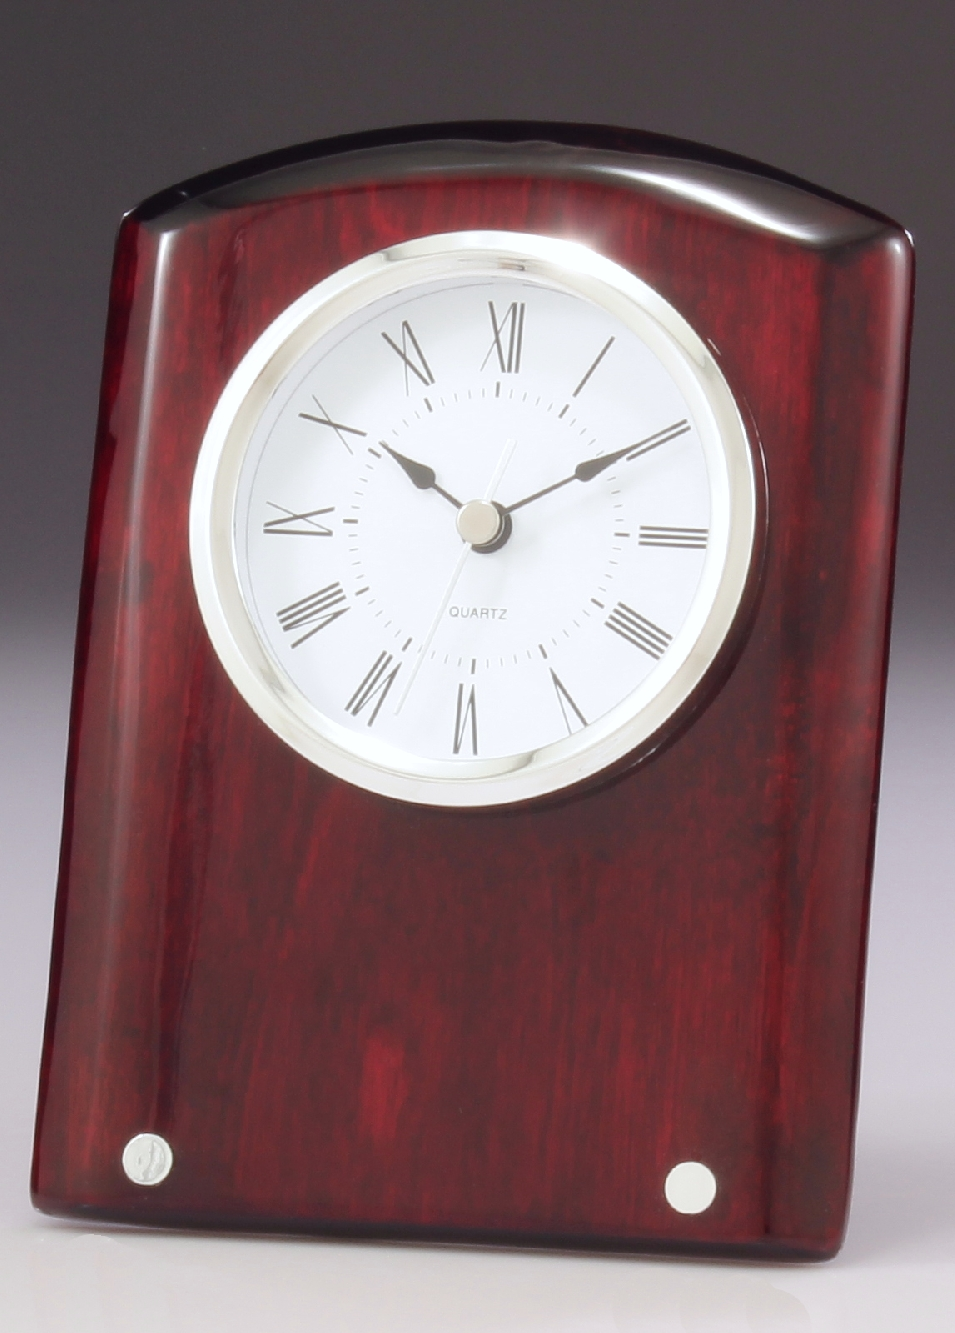 Piano finish clock